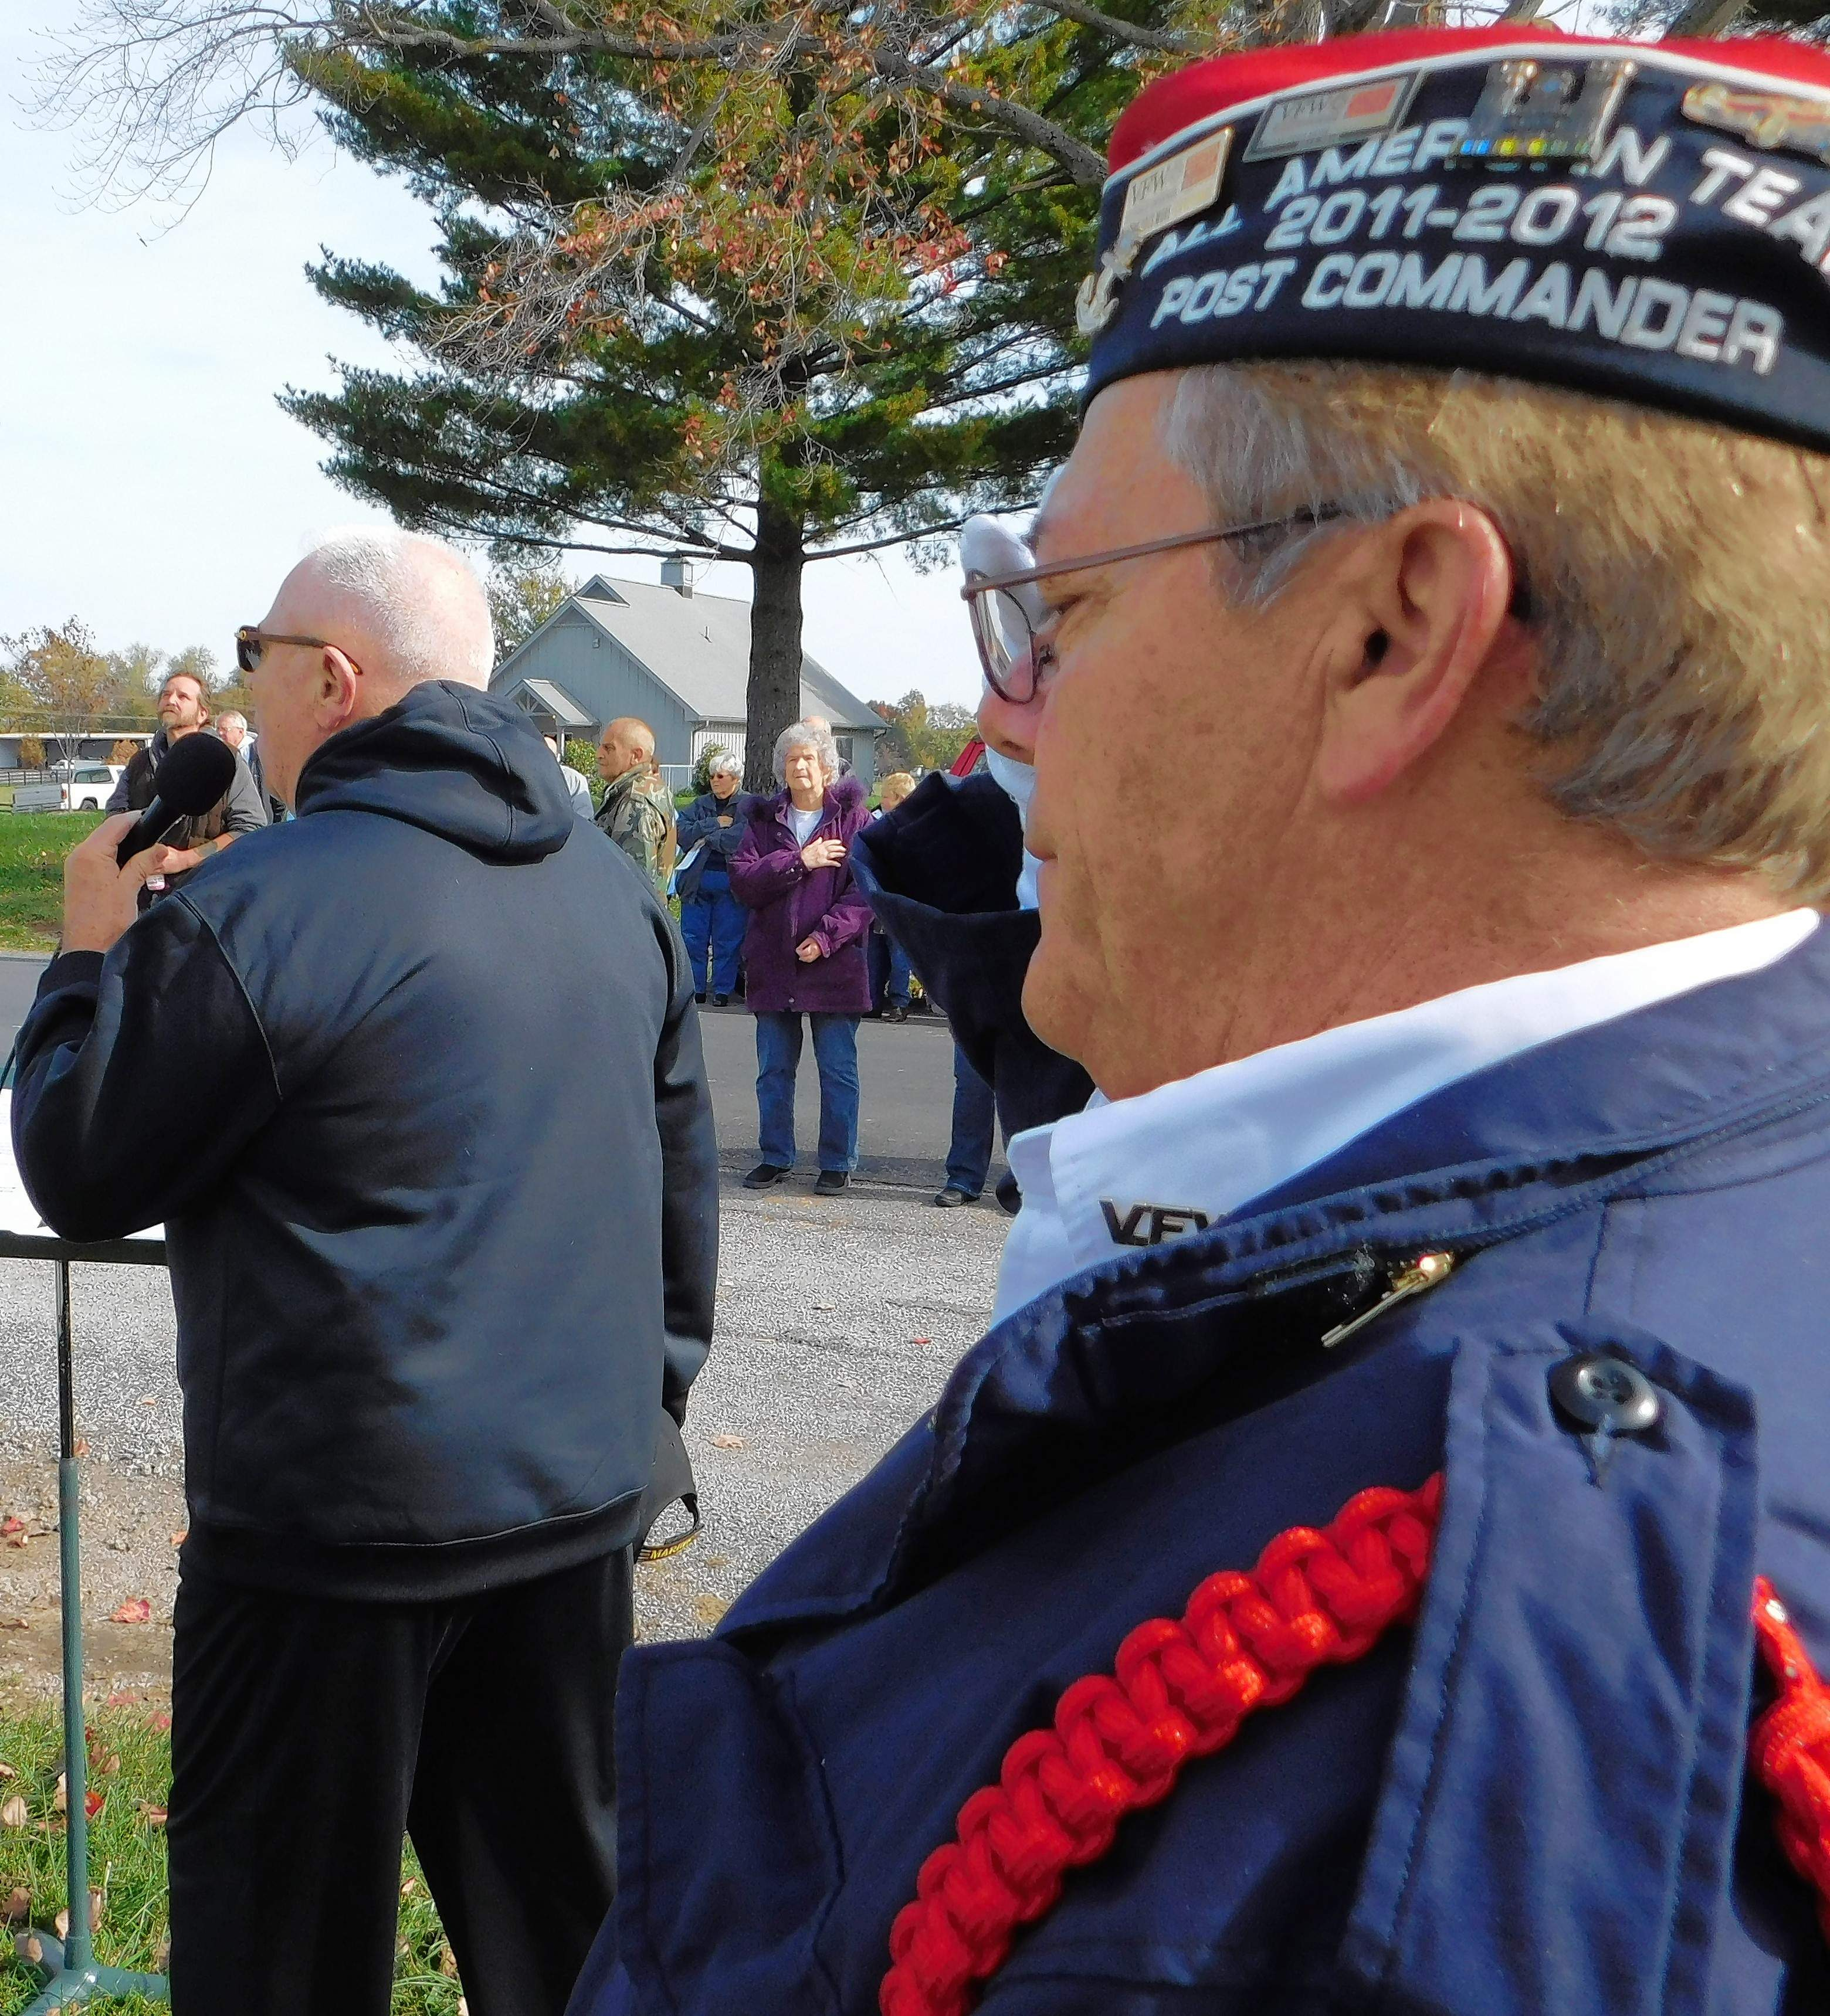 VFW Quartermaster John Metzger listens as Ron Head gives an impromptu rendition of 'The Star Spangled Banner.'